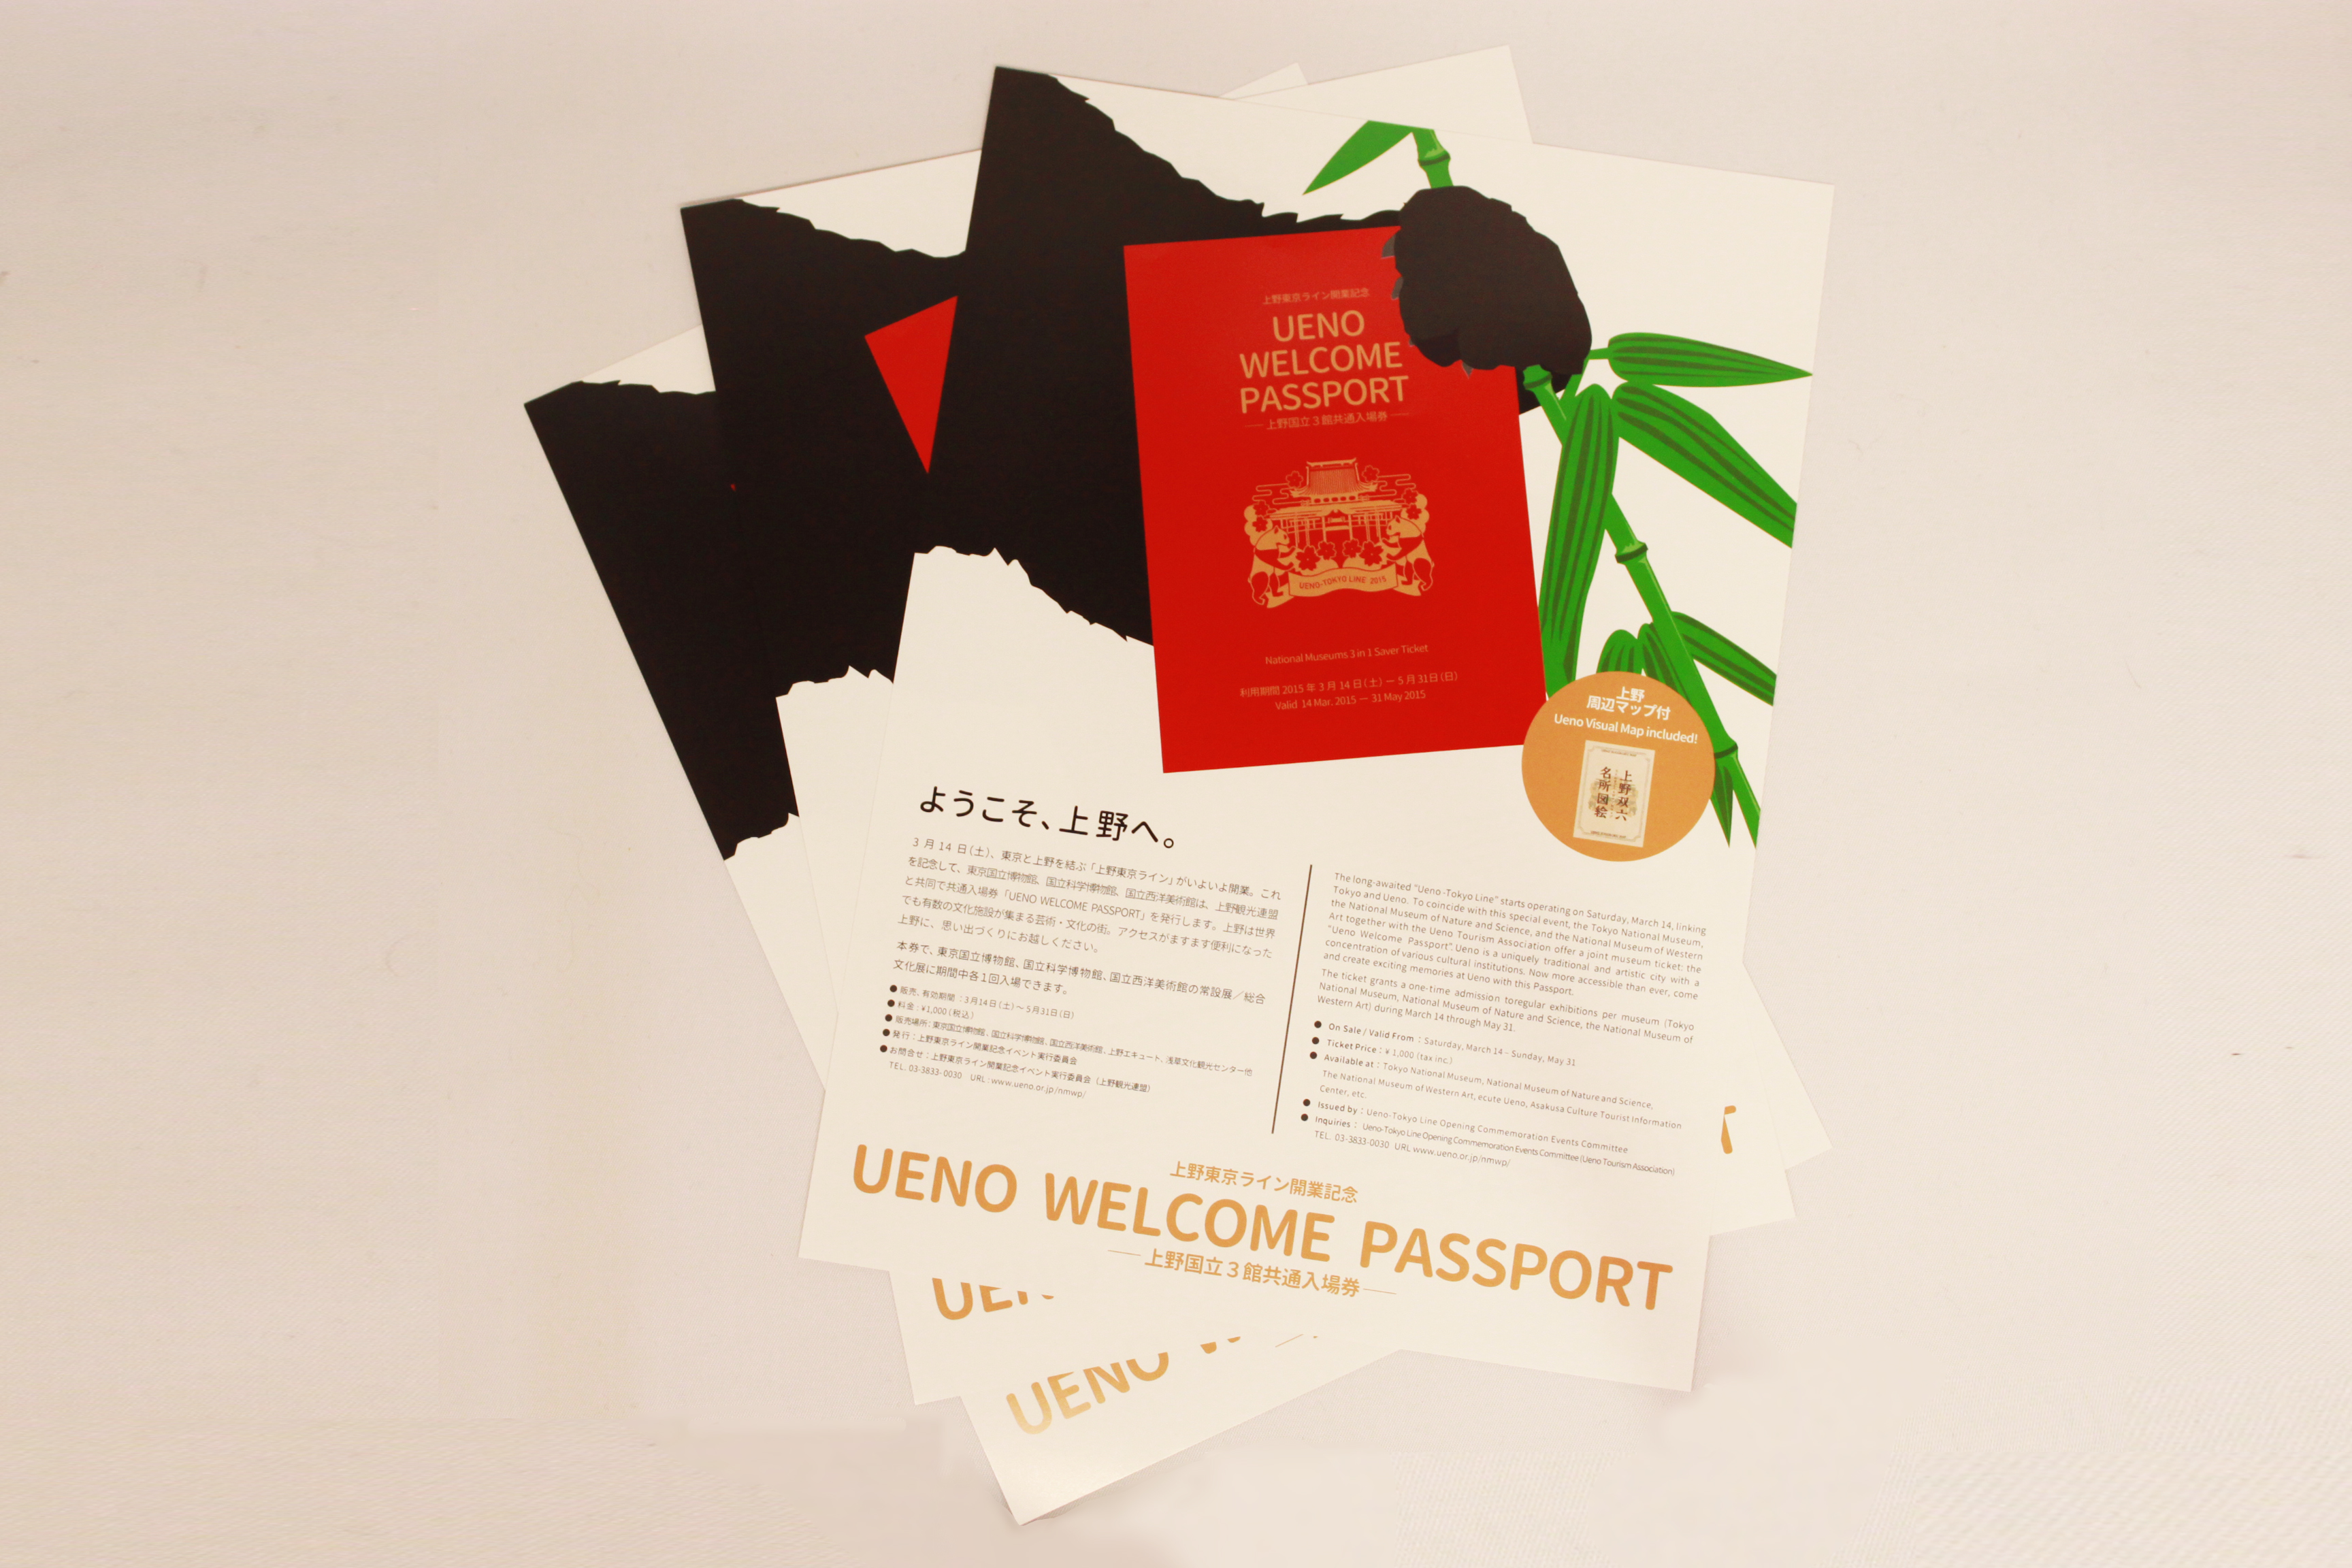 UENO WELCOME PASSPORT2015 チラシ